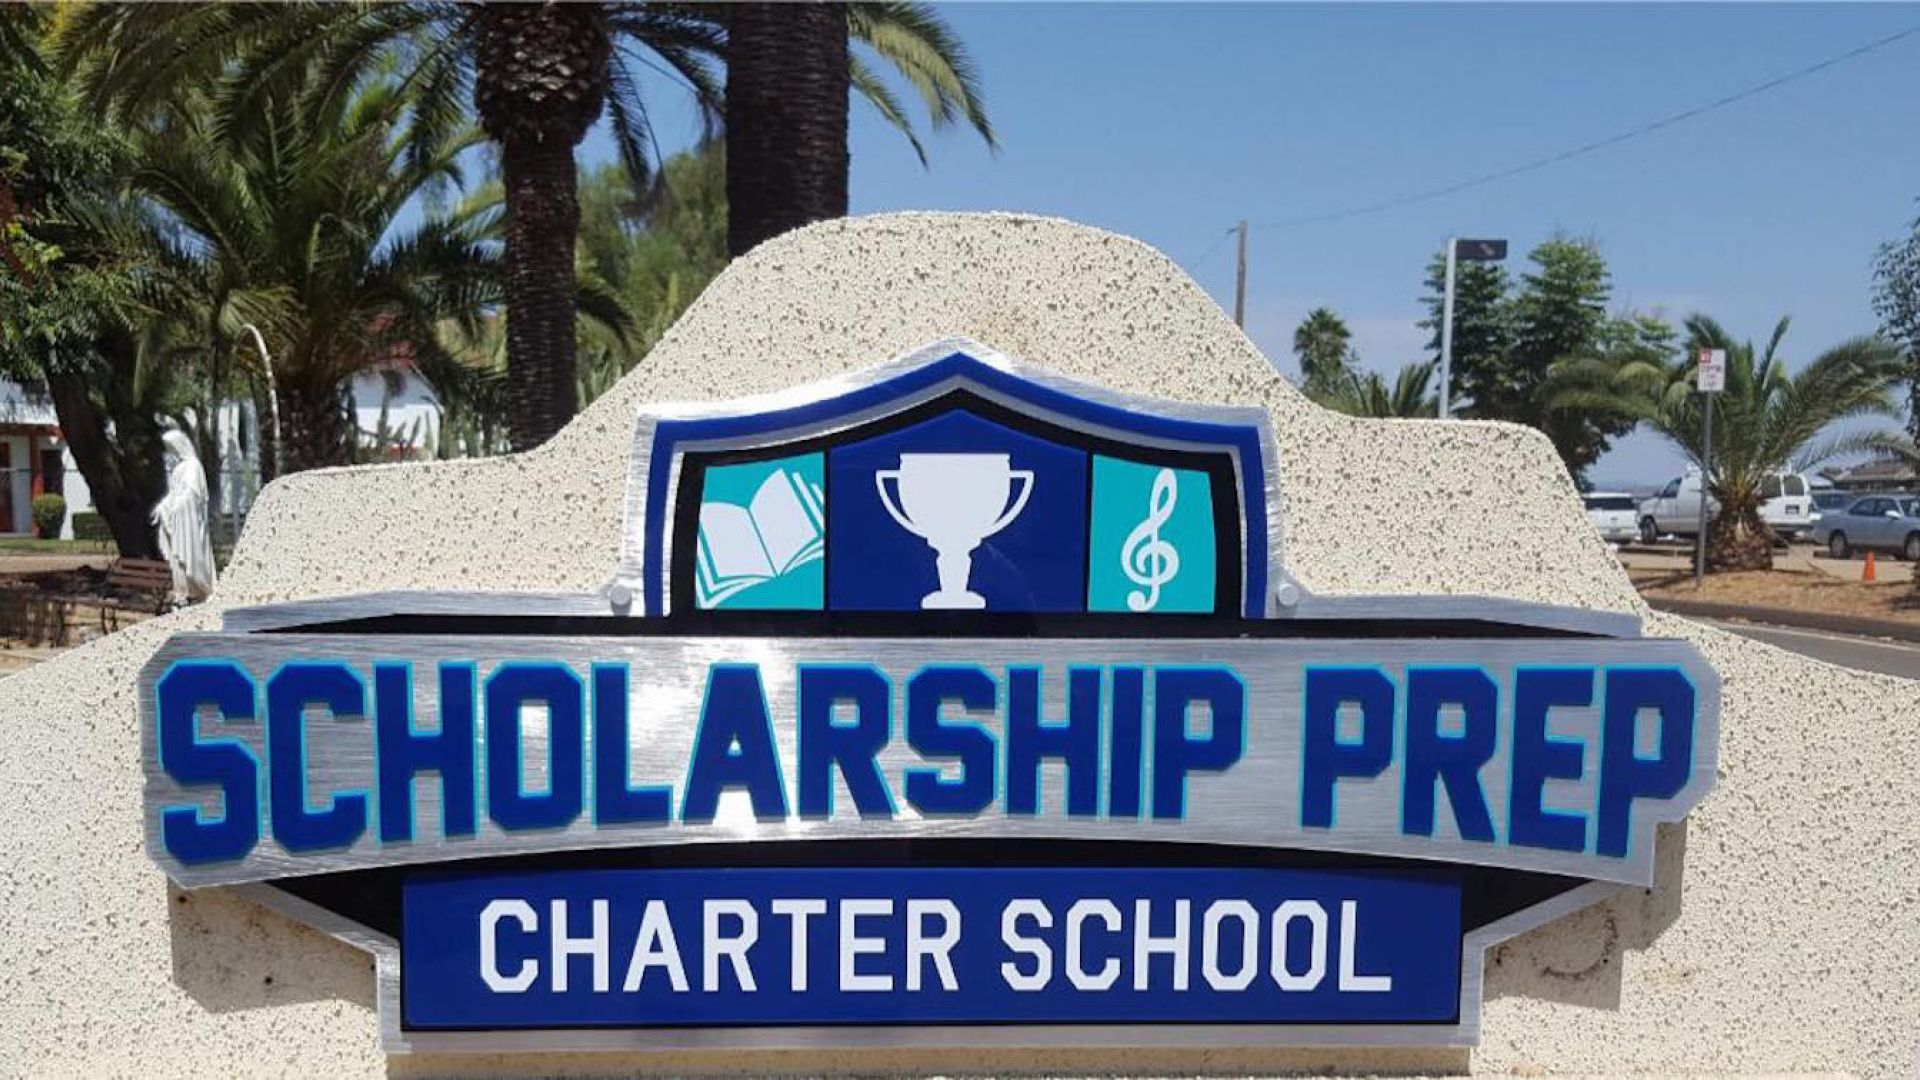 Scholarship Prep - Oceanside Geta A New Marquee